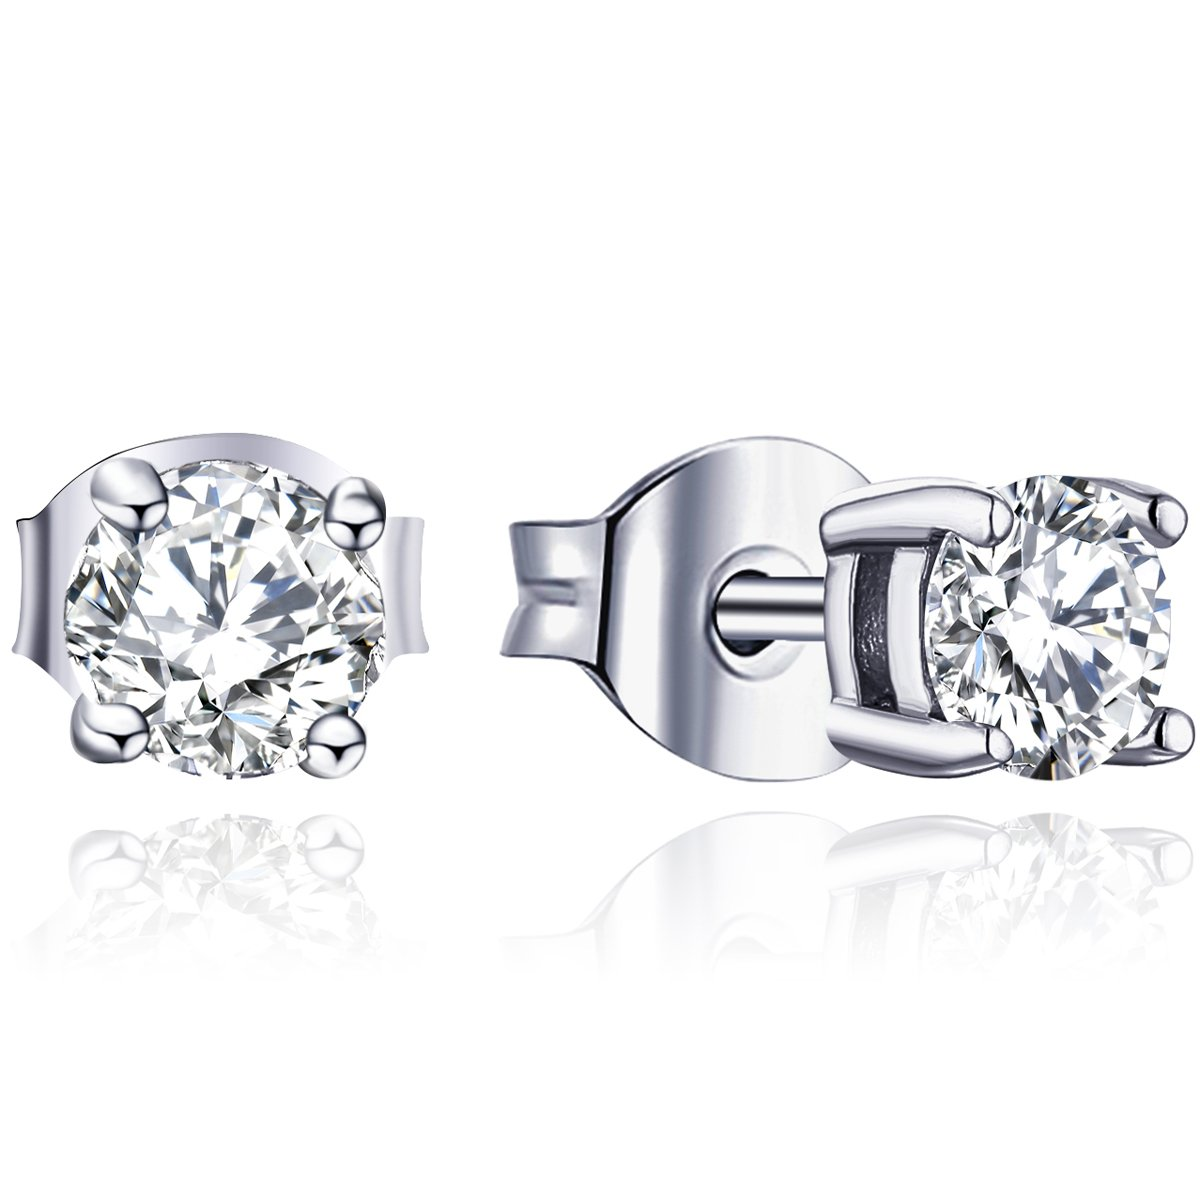 85003ca7d Amazon.com: YL 18K White Gold Solitaire Moissanite Stud Earrings, 0.5 Cttw:  Jewelry